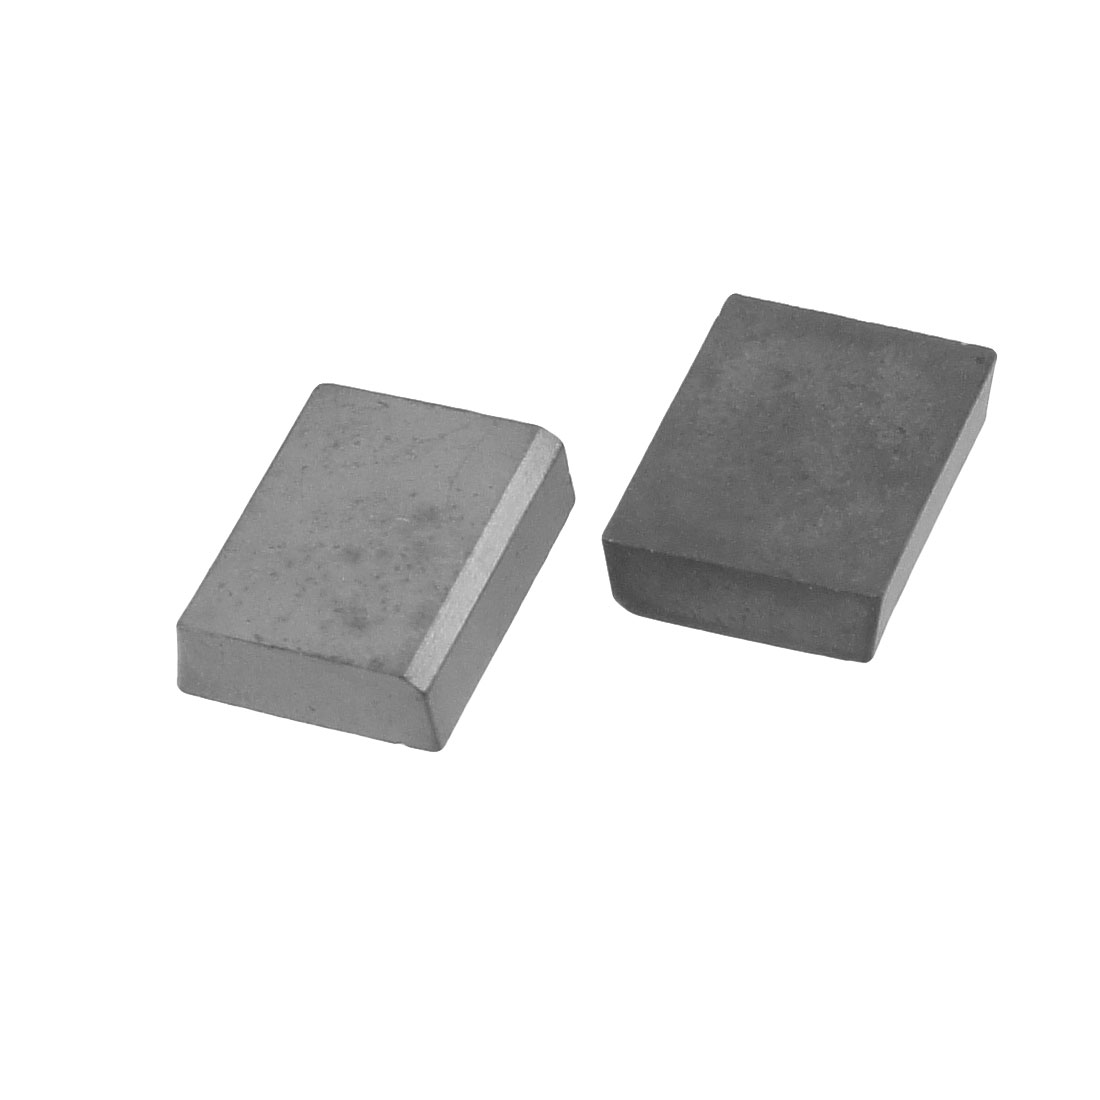 2 Pcs Lathe Tool Bit Square Hard Alloy Cemented Carbide Inserts